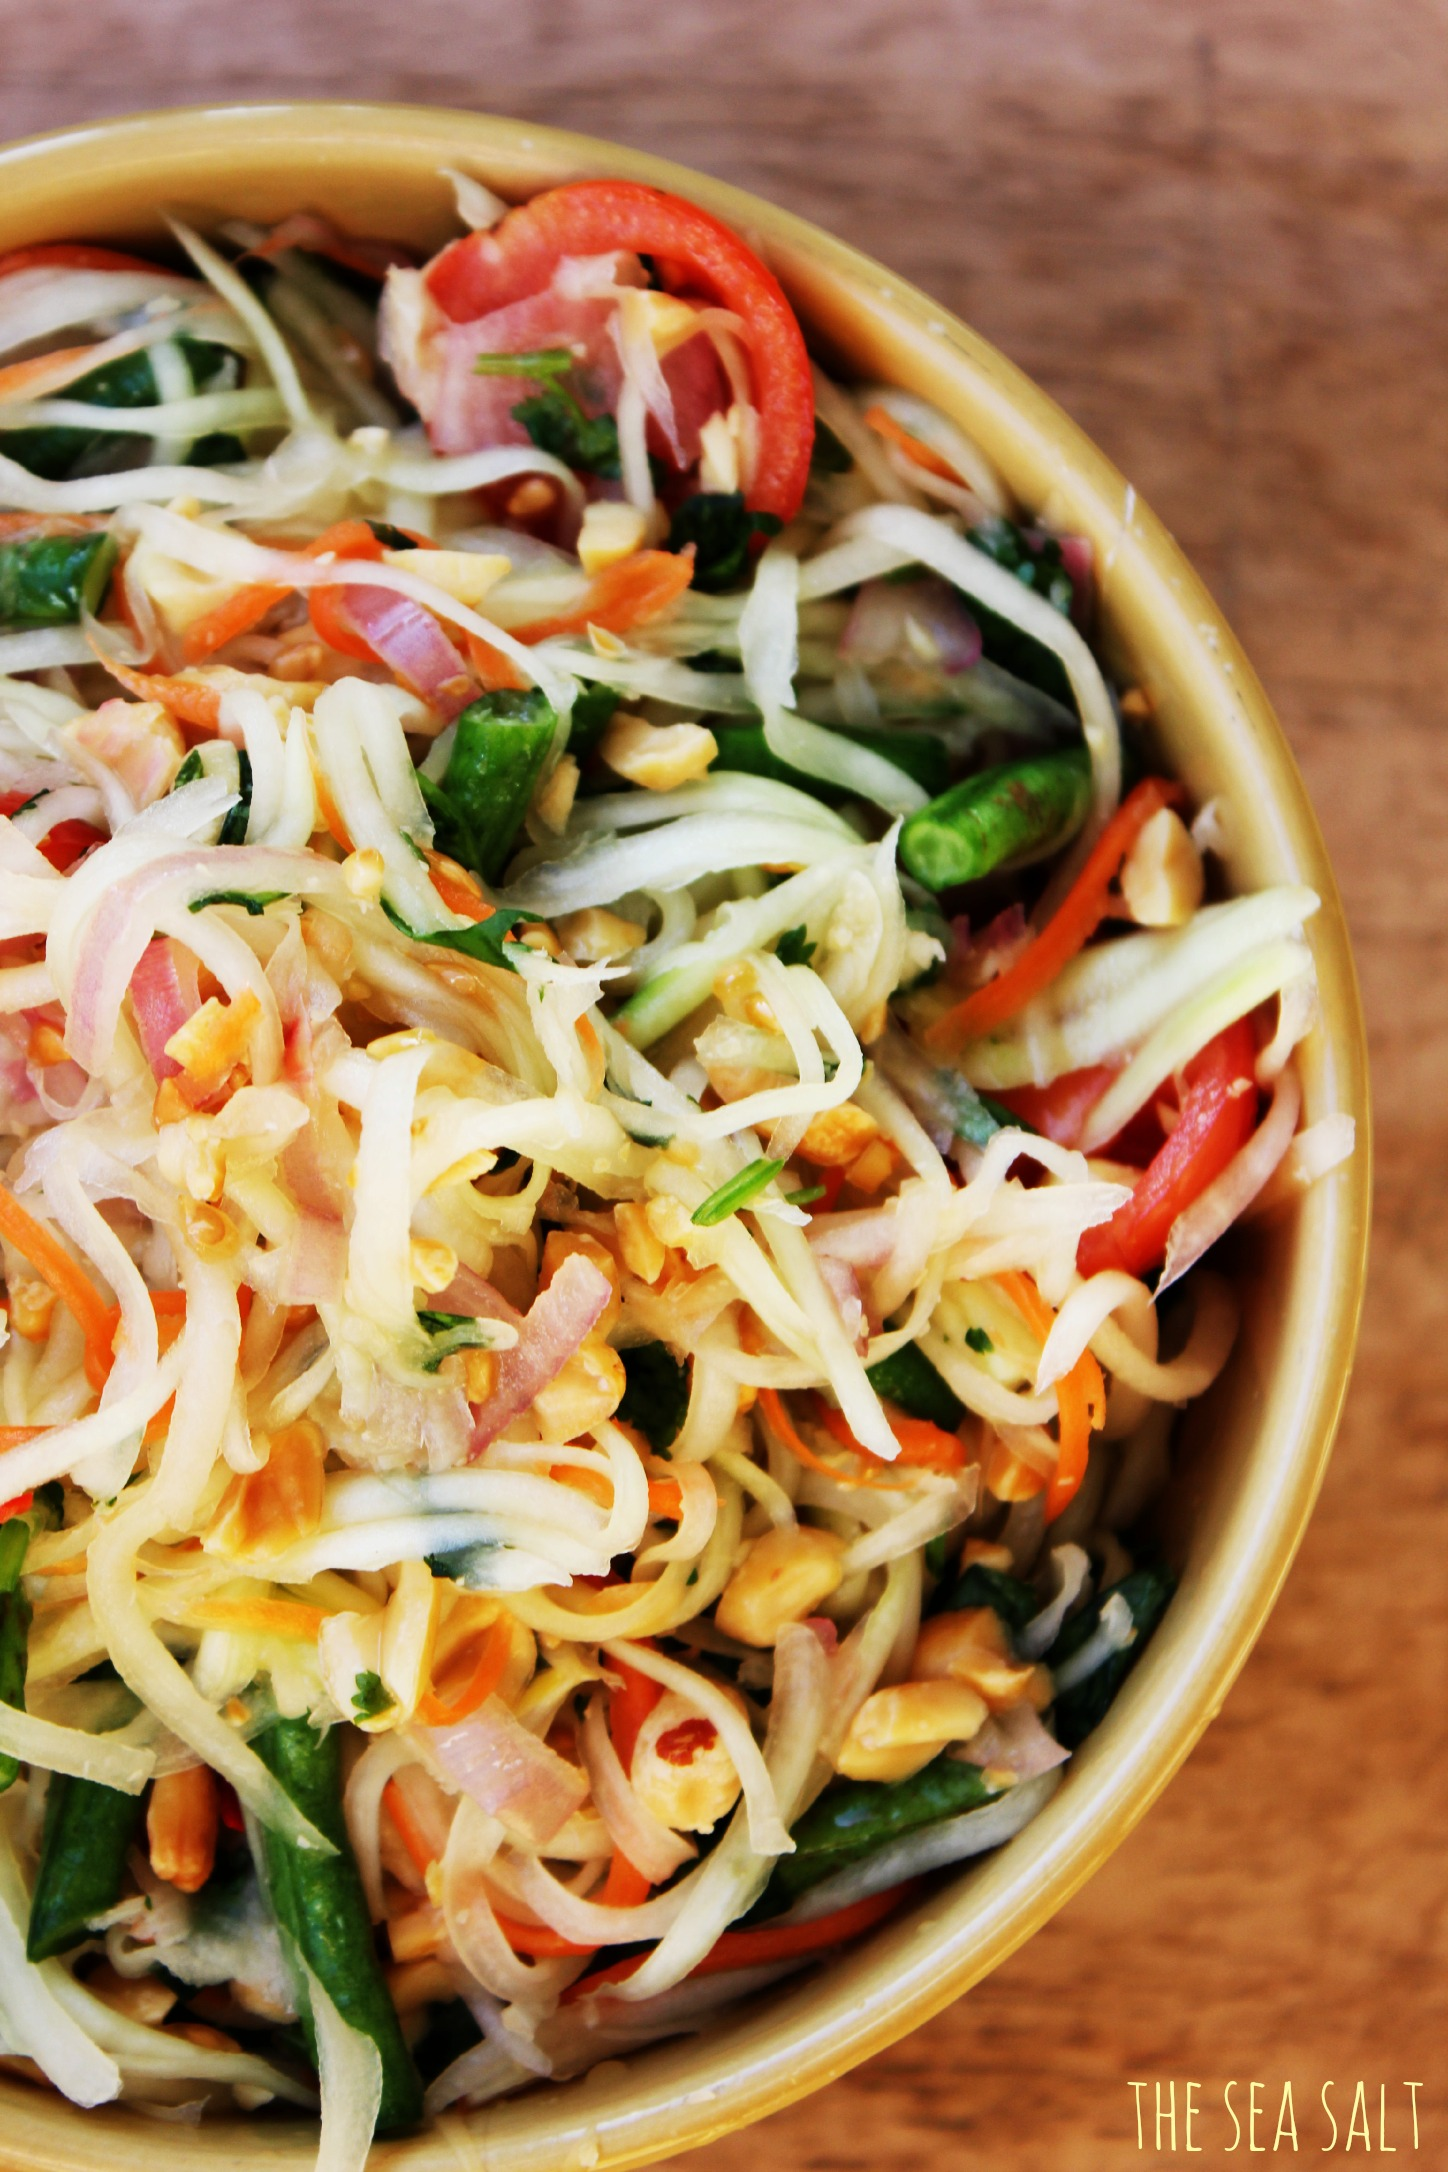 Thai Green Papaya Salad (Som Tum)